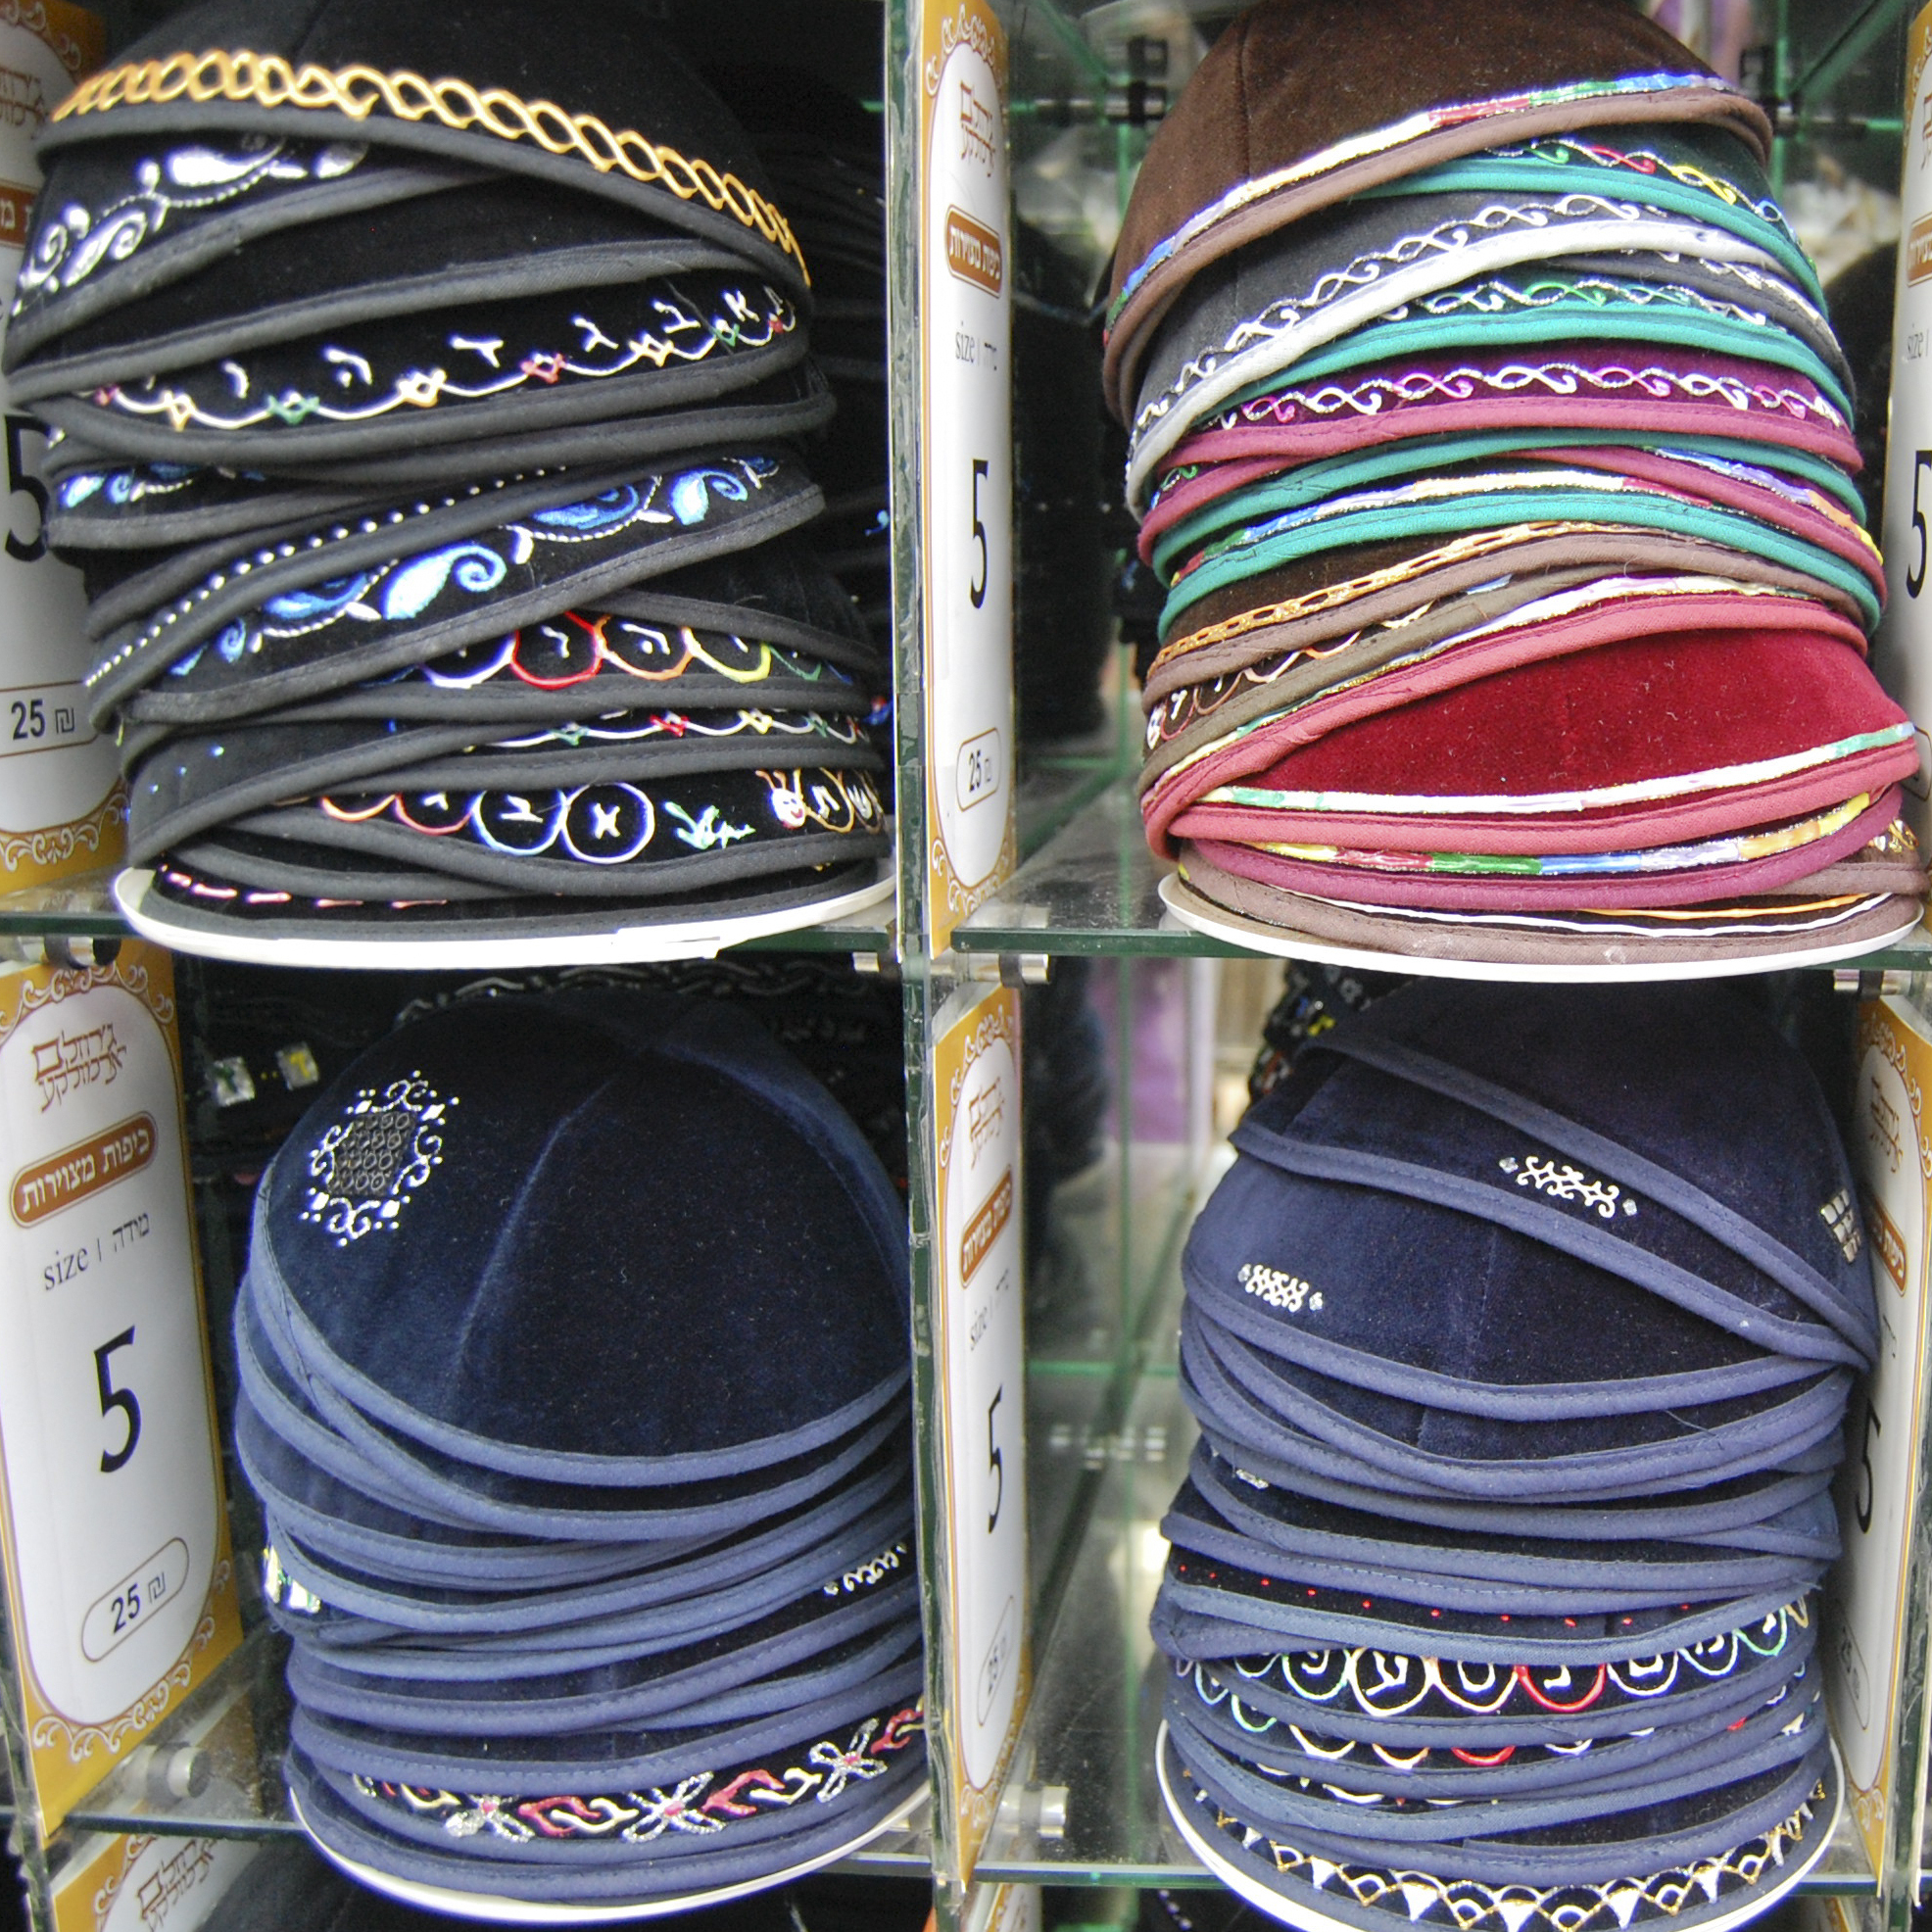 Yarmulkes are for sale in the $5 range in the ultra-orthodox Jerusalem neighborhood of Mea Shearim.